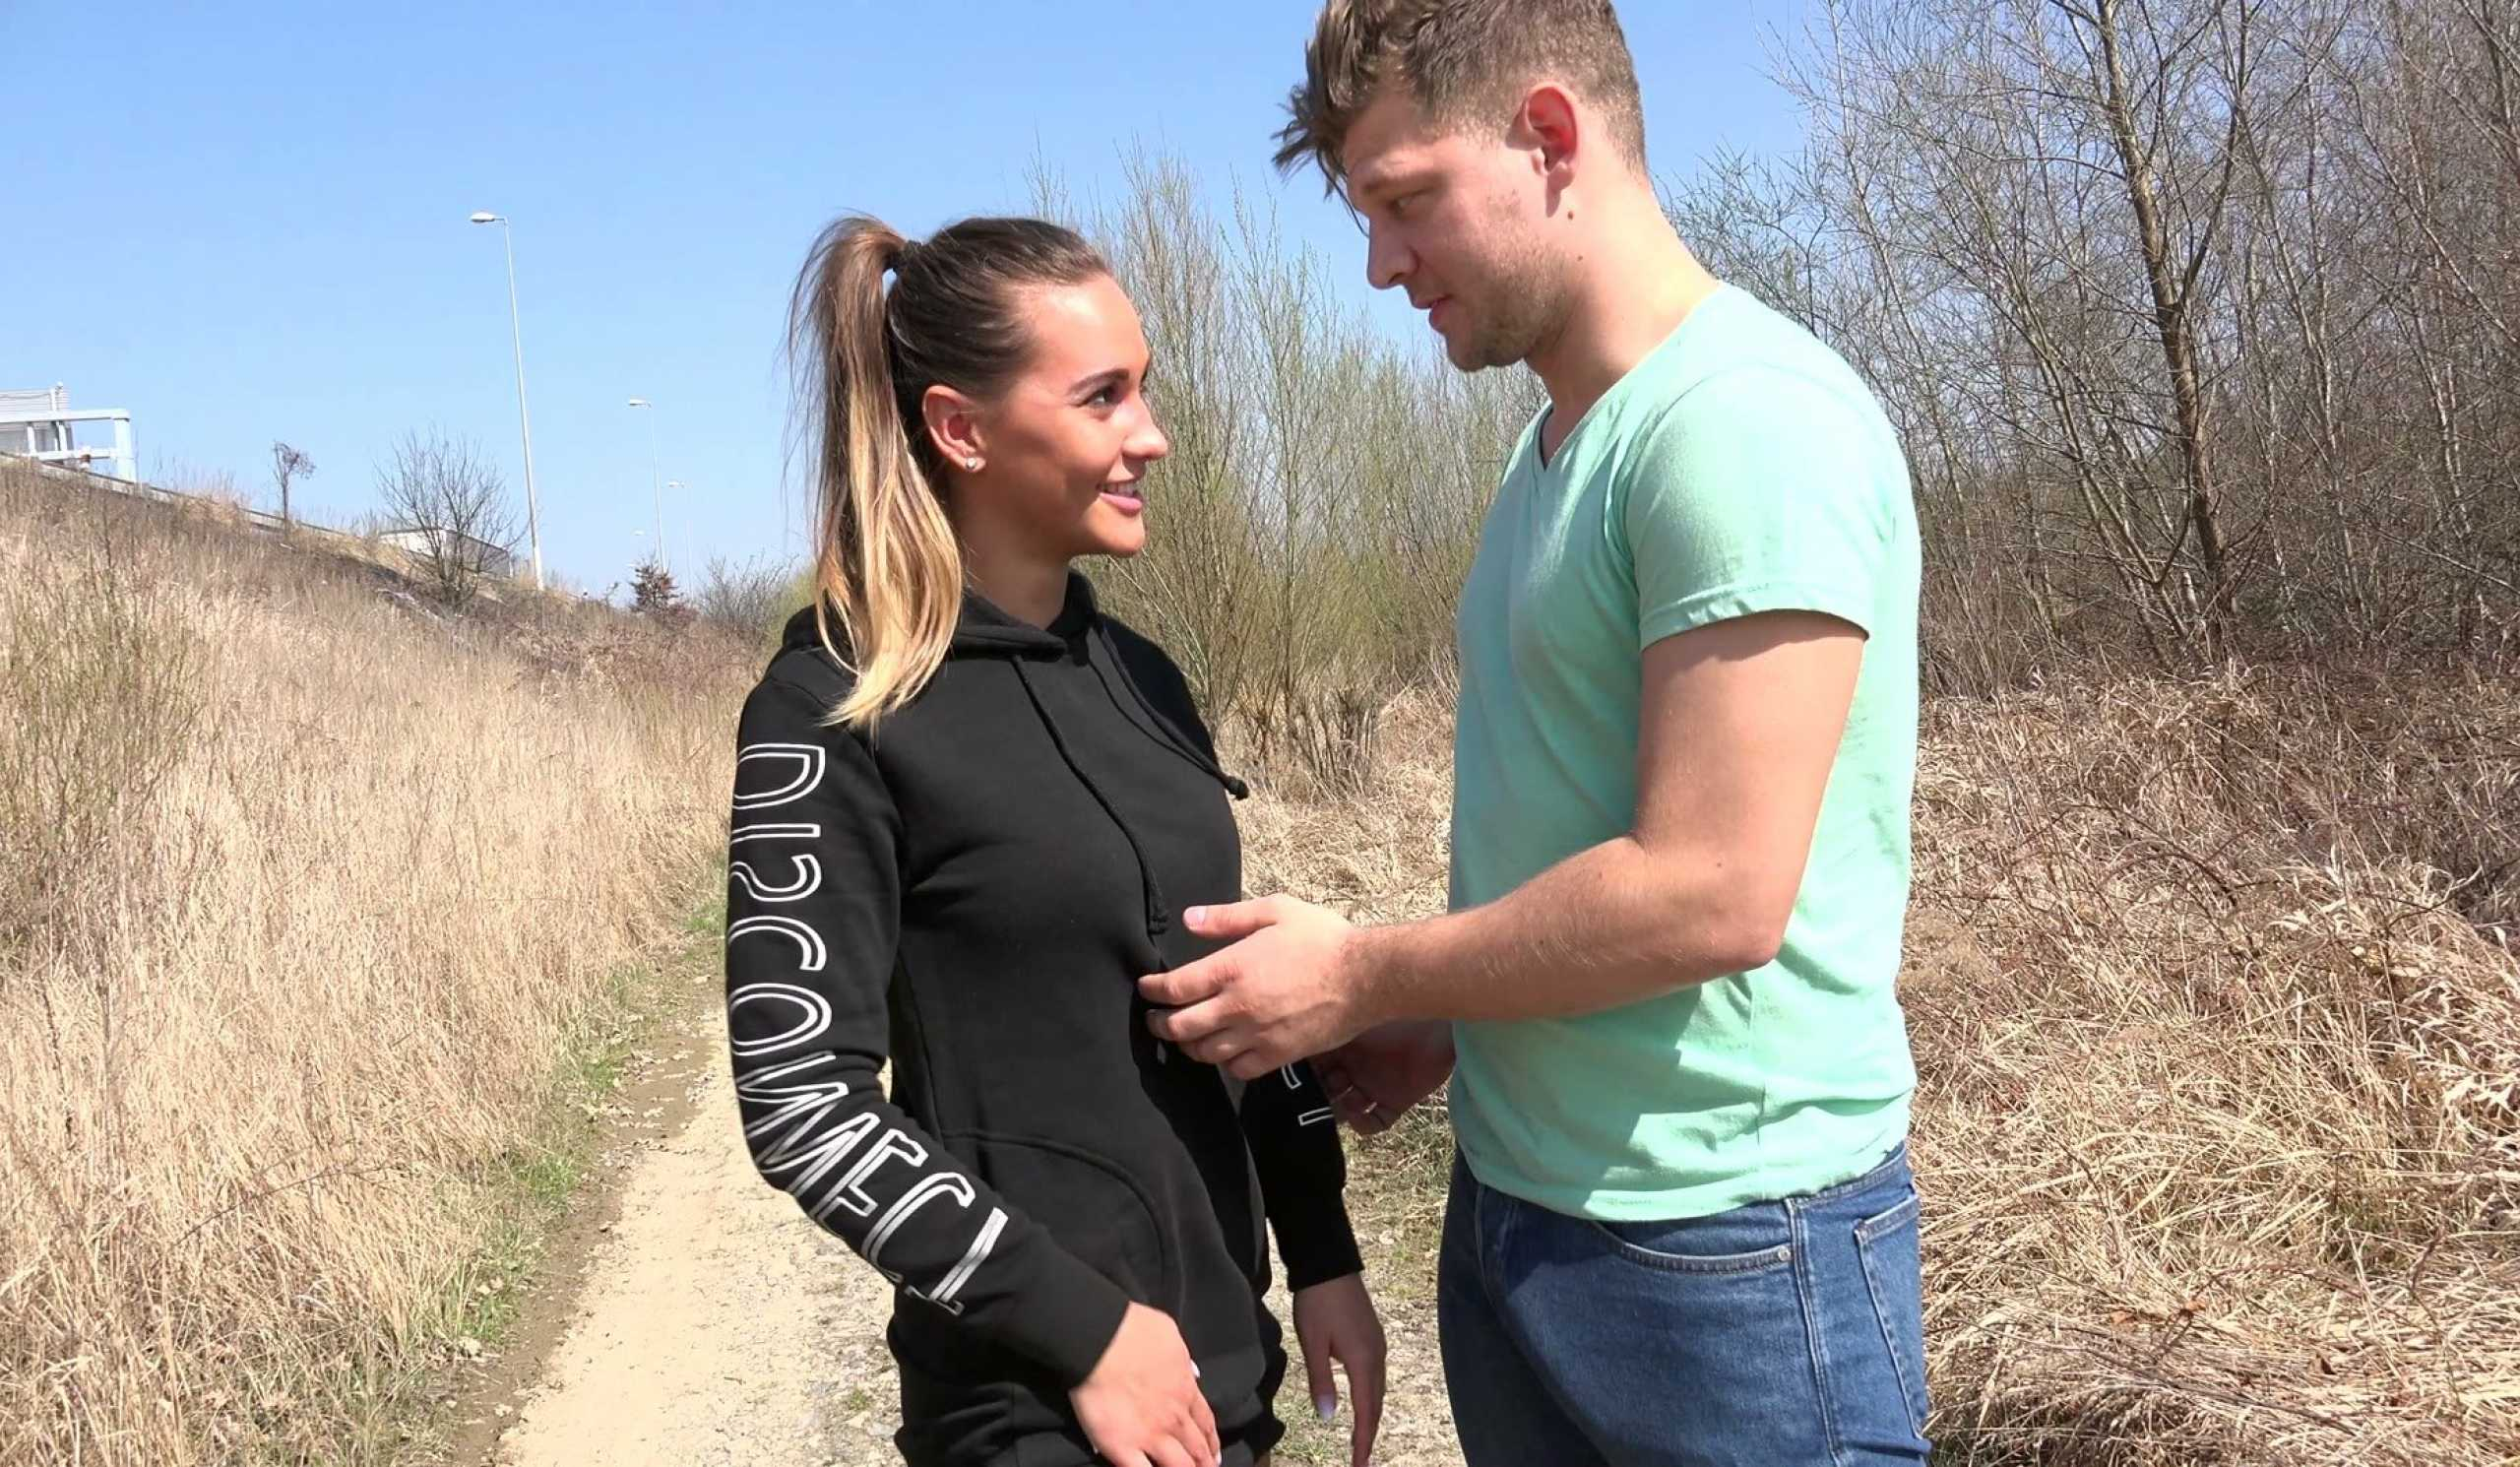 Czech babe Naomi Bennet loves outdoor sex